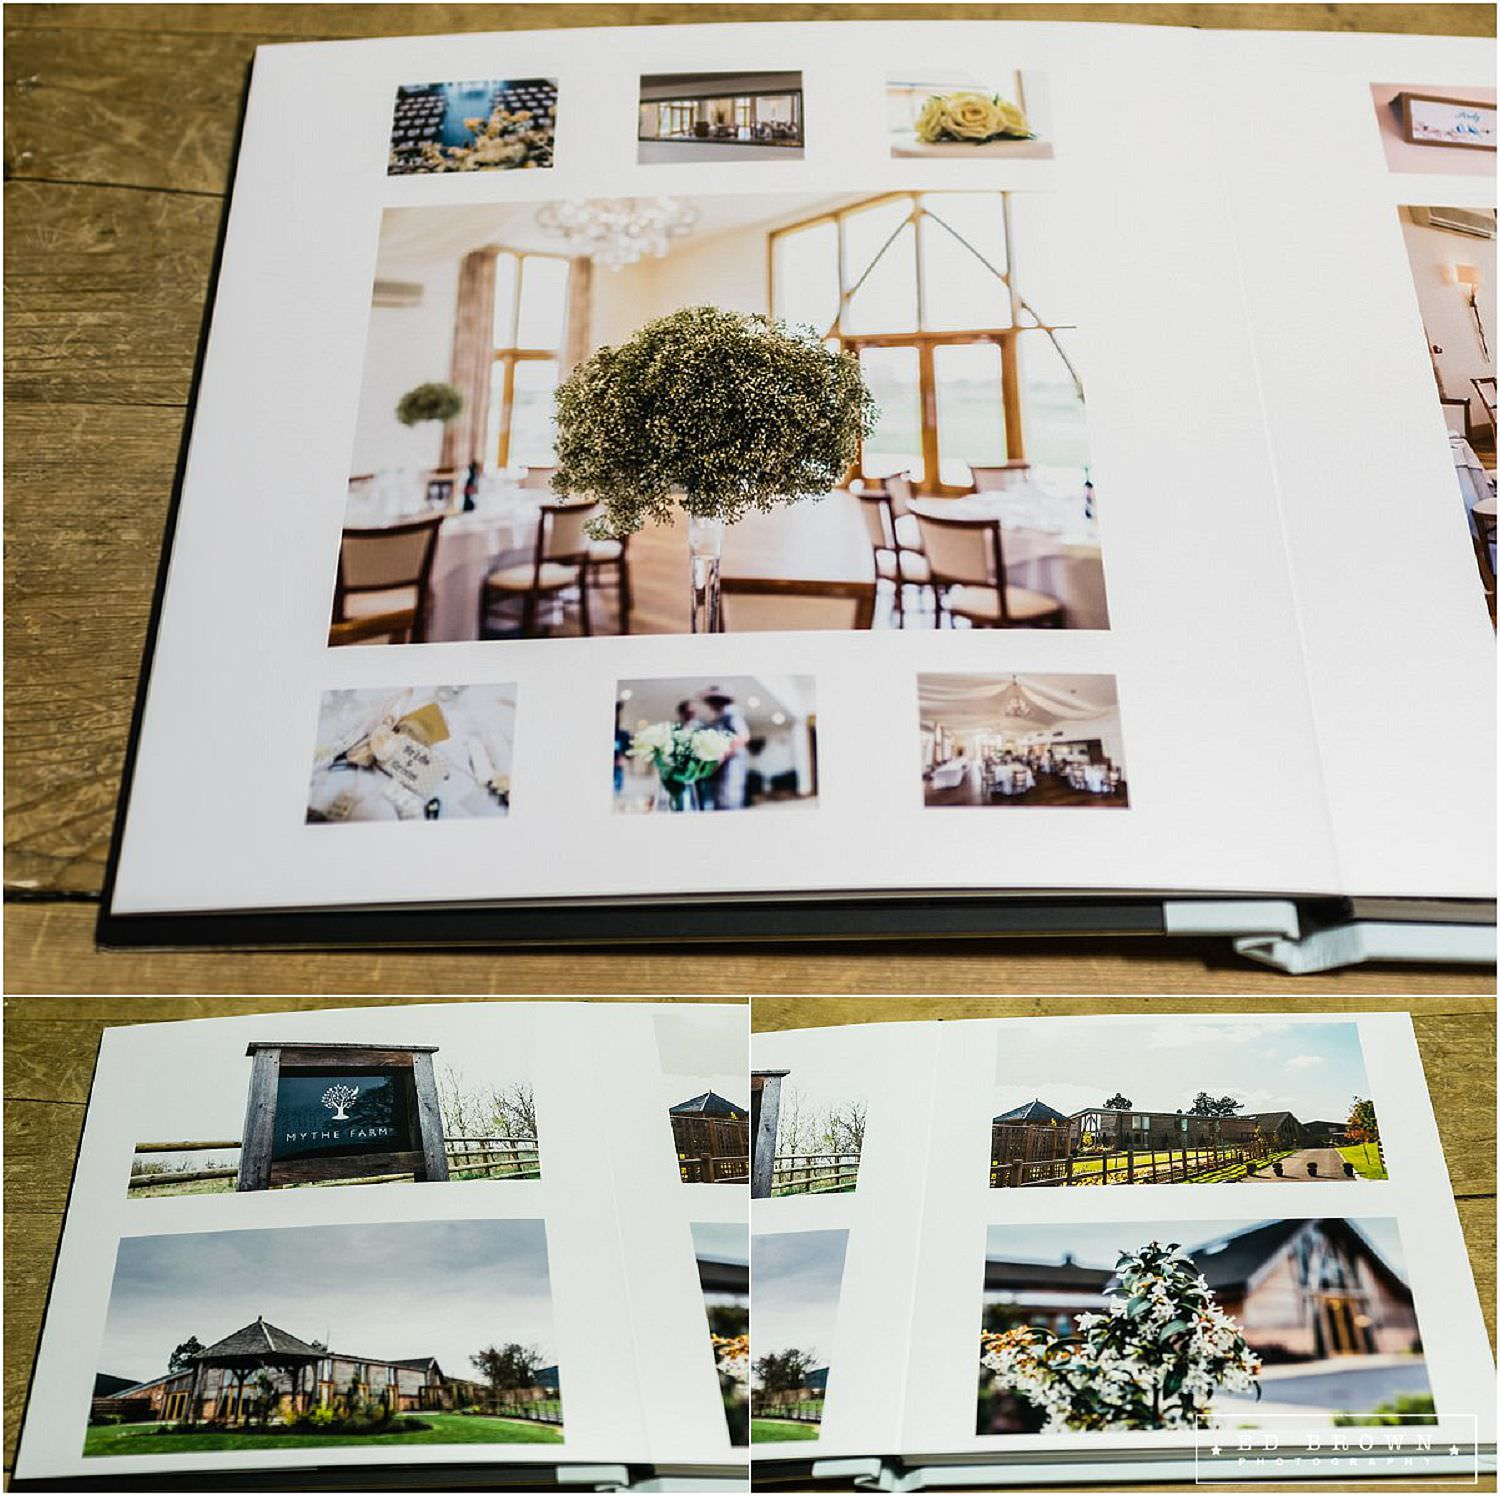 Mythe Barn Wedding Album.jpg